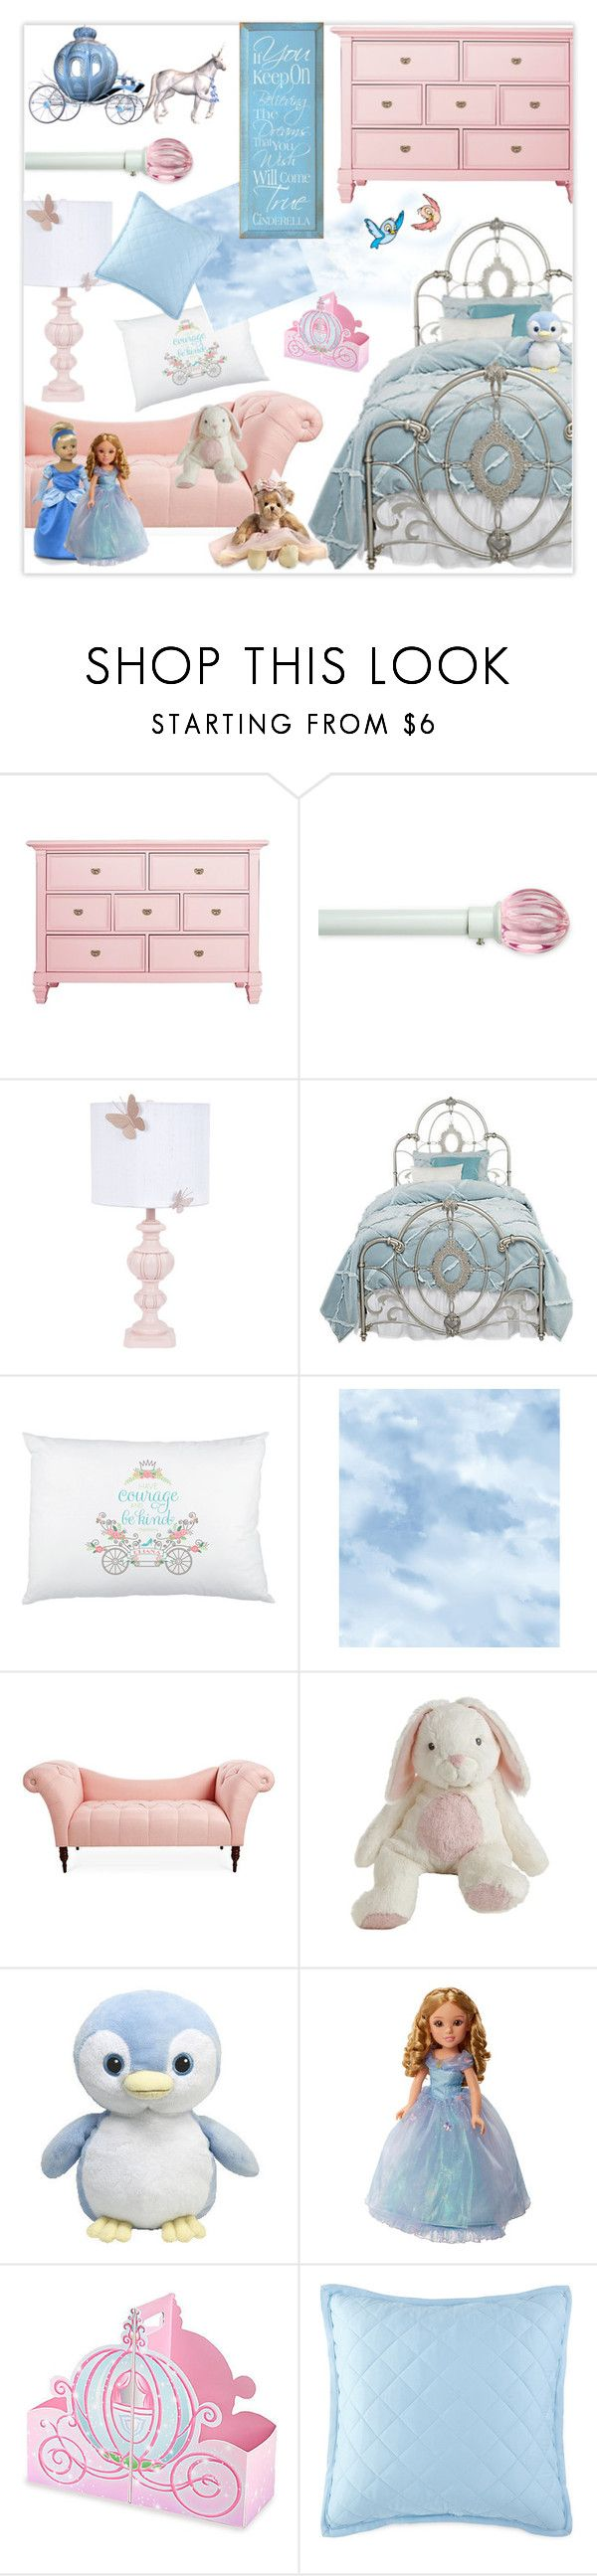 best 20 cinderella bedroom ideas on pinterest princess nursery